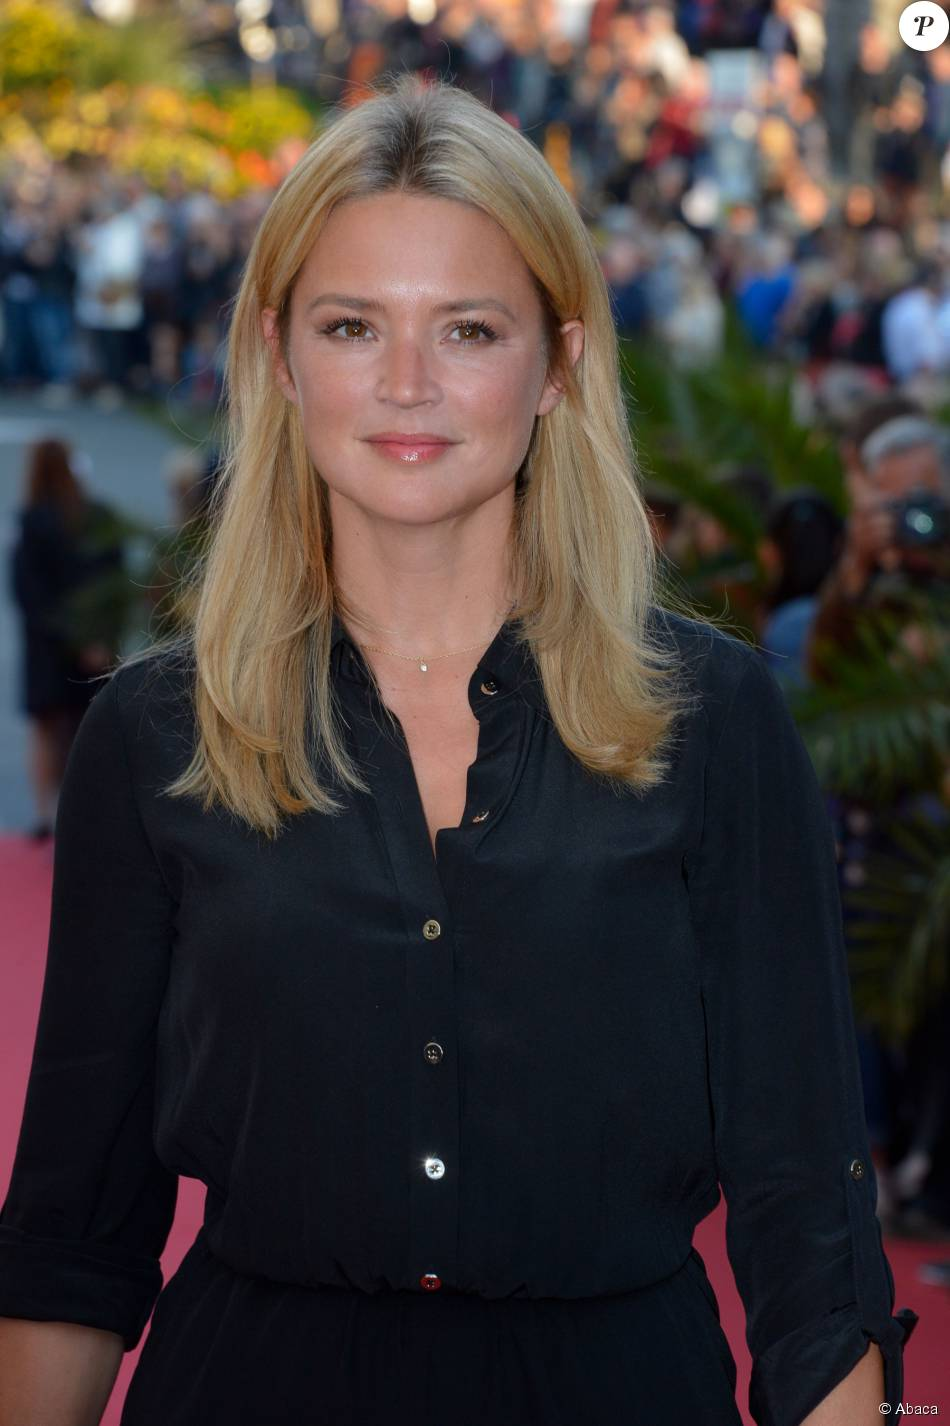 virginie efira alexandra lamy divines cin philes pour le final de dinard purepeople. Black Bedroom Furniture Sets. Home Design Ideas